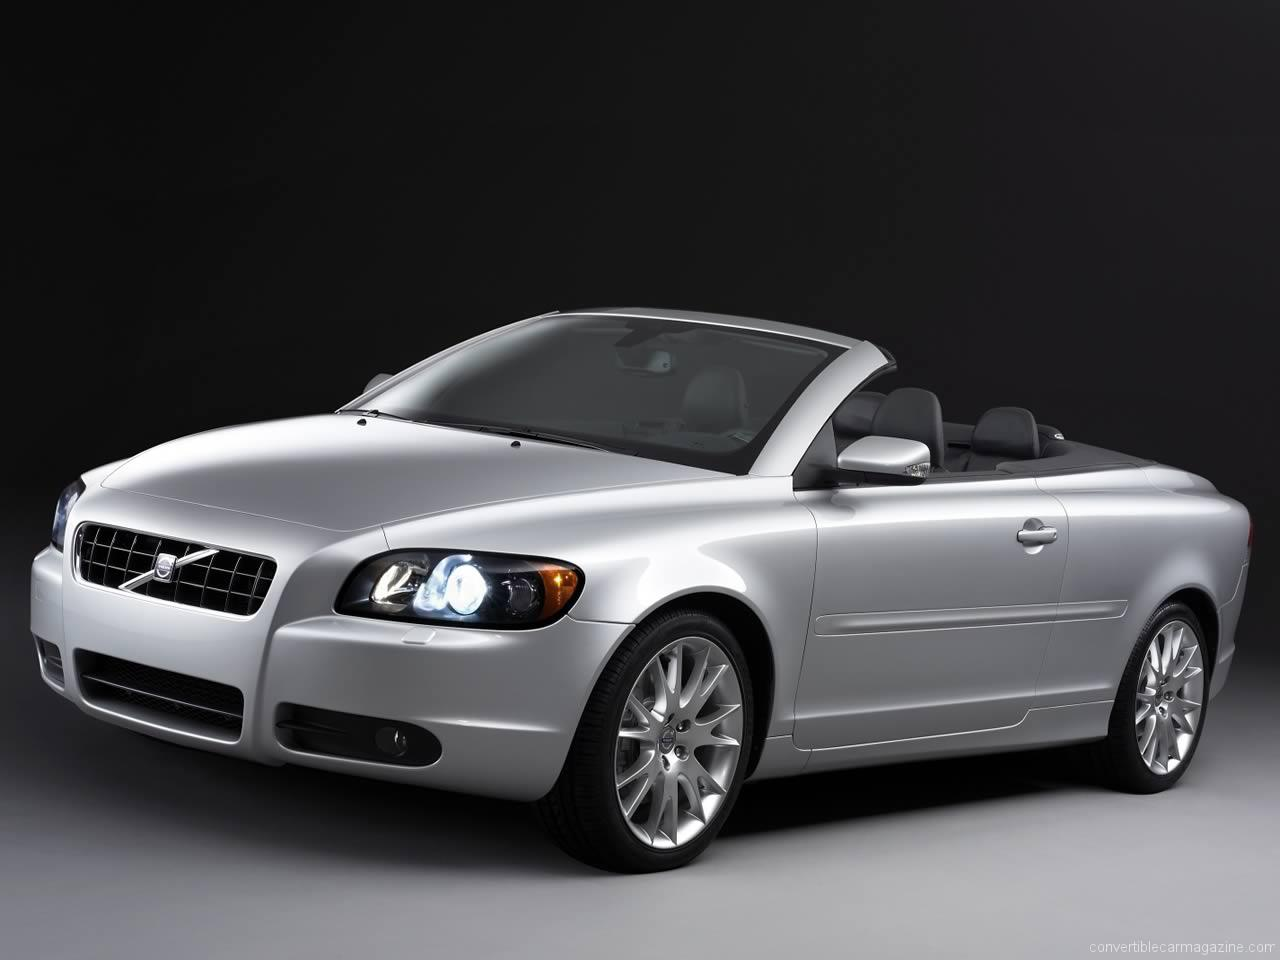 Volvo cabriolet photo - 7